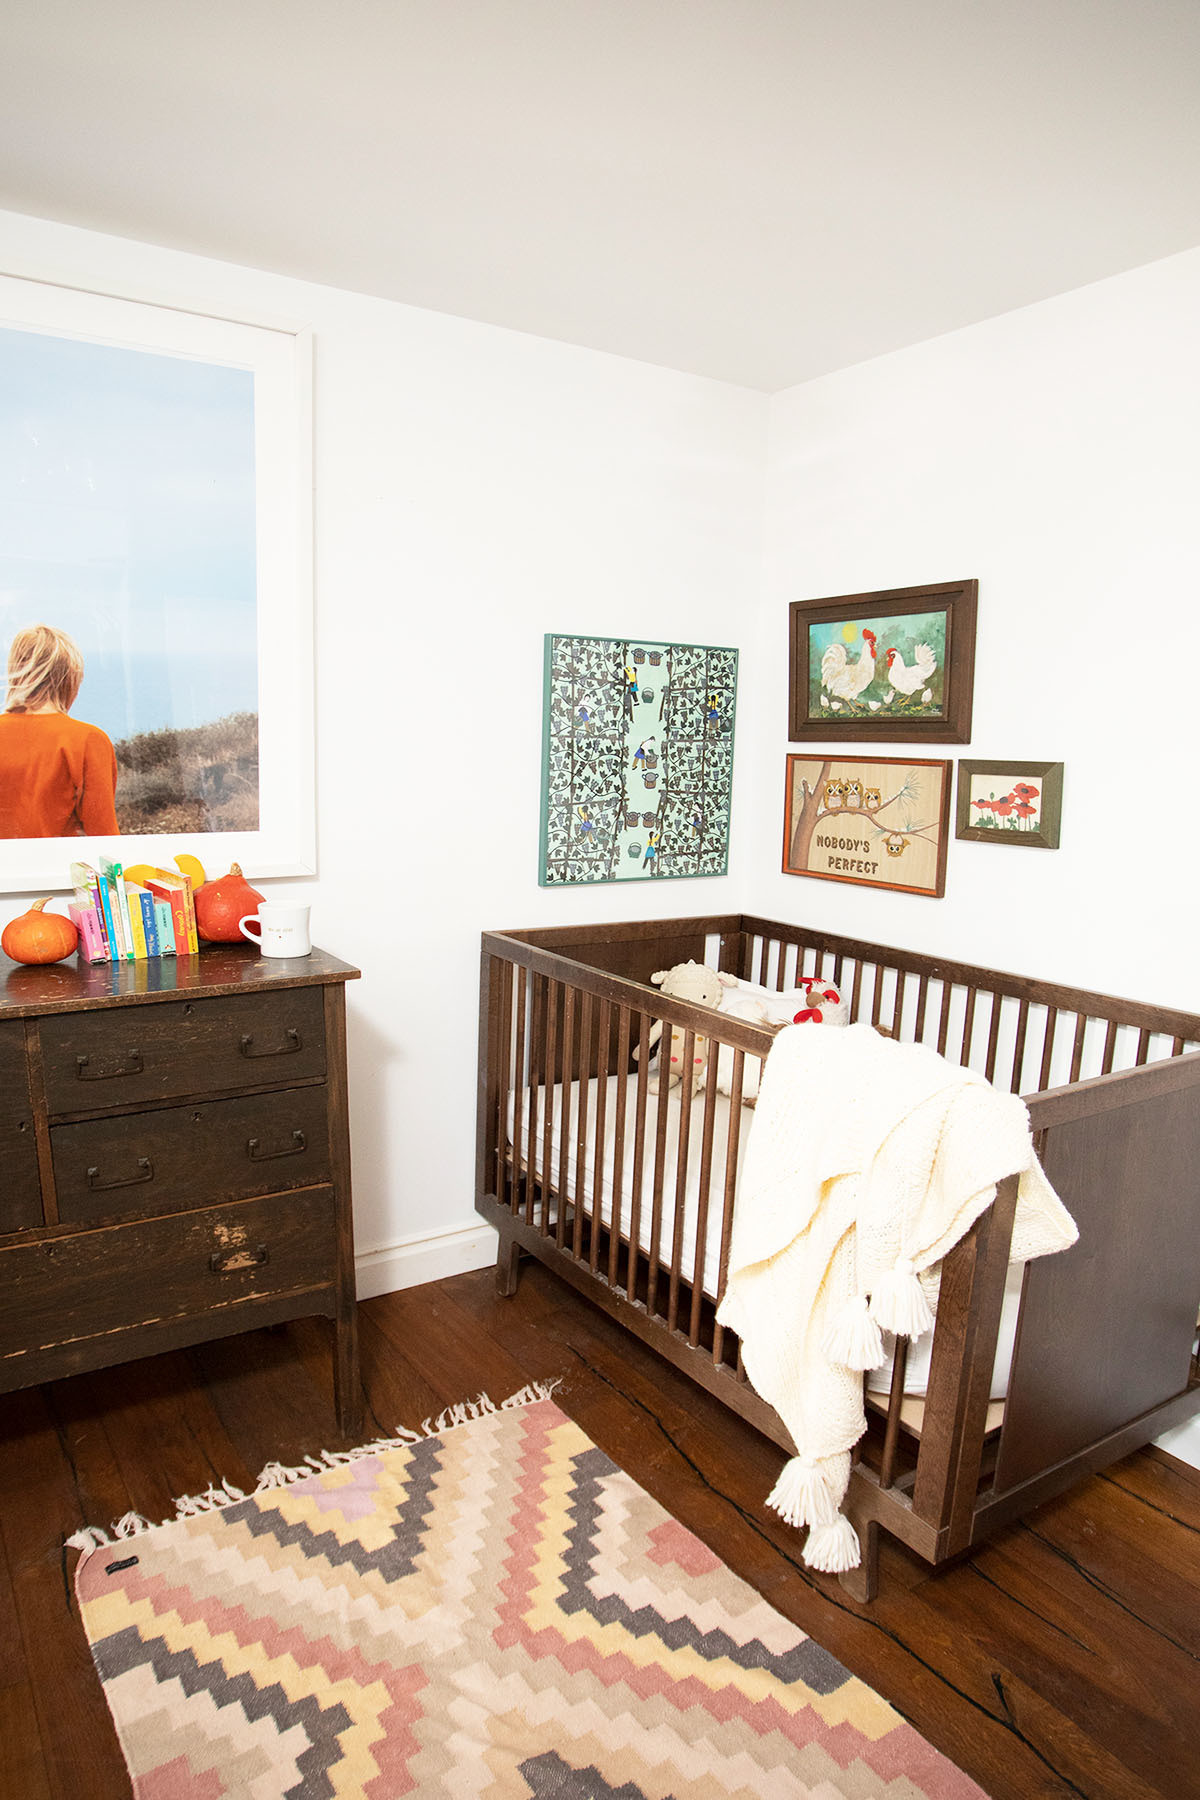 Sophie's nursery — located directly off the kitchen and complete with repurposed vintage furniture and oversized prints — evokes a relaxed aesthetic. Jimmy Marble Print | Vintage Dresser | Vintage Crib | Target Bedding | Target Throw | Vintage Runner | SFMoMa Store Assorted Accent Pieces | Vintage Toys.